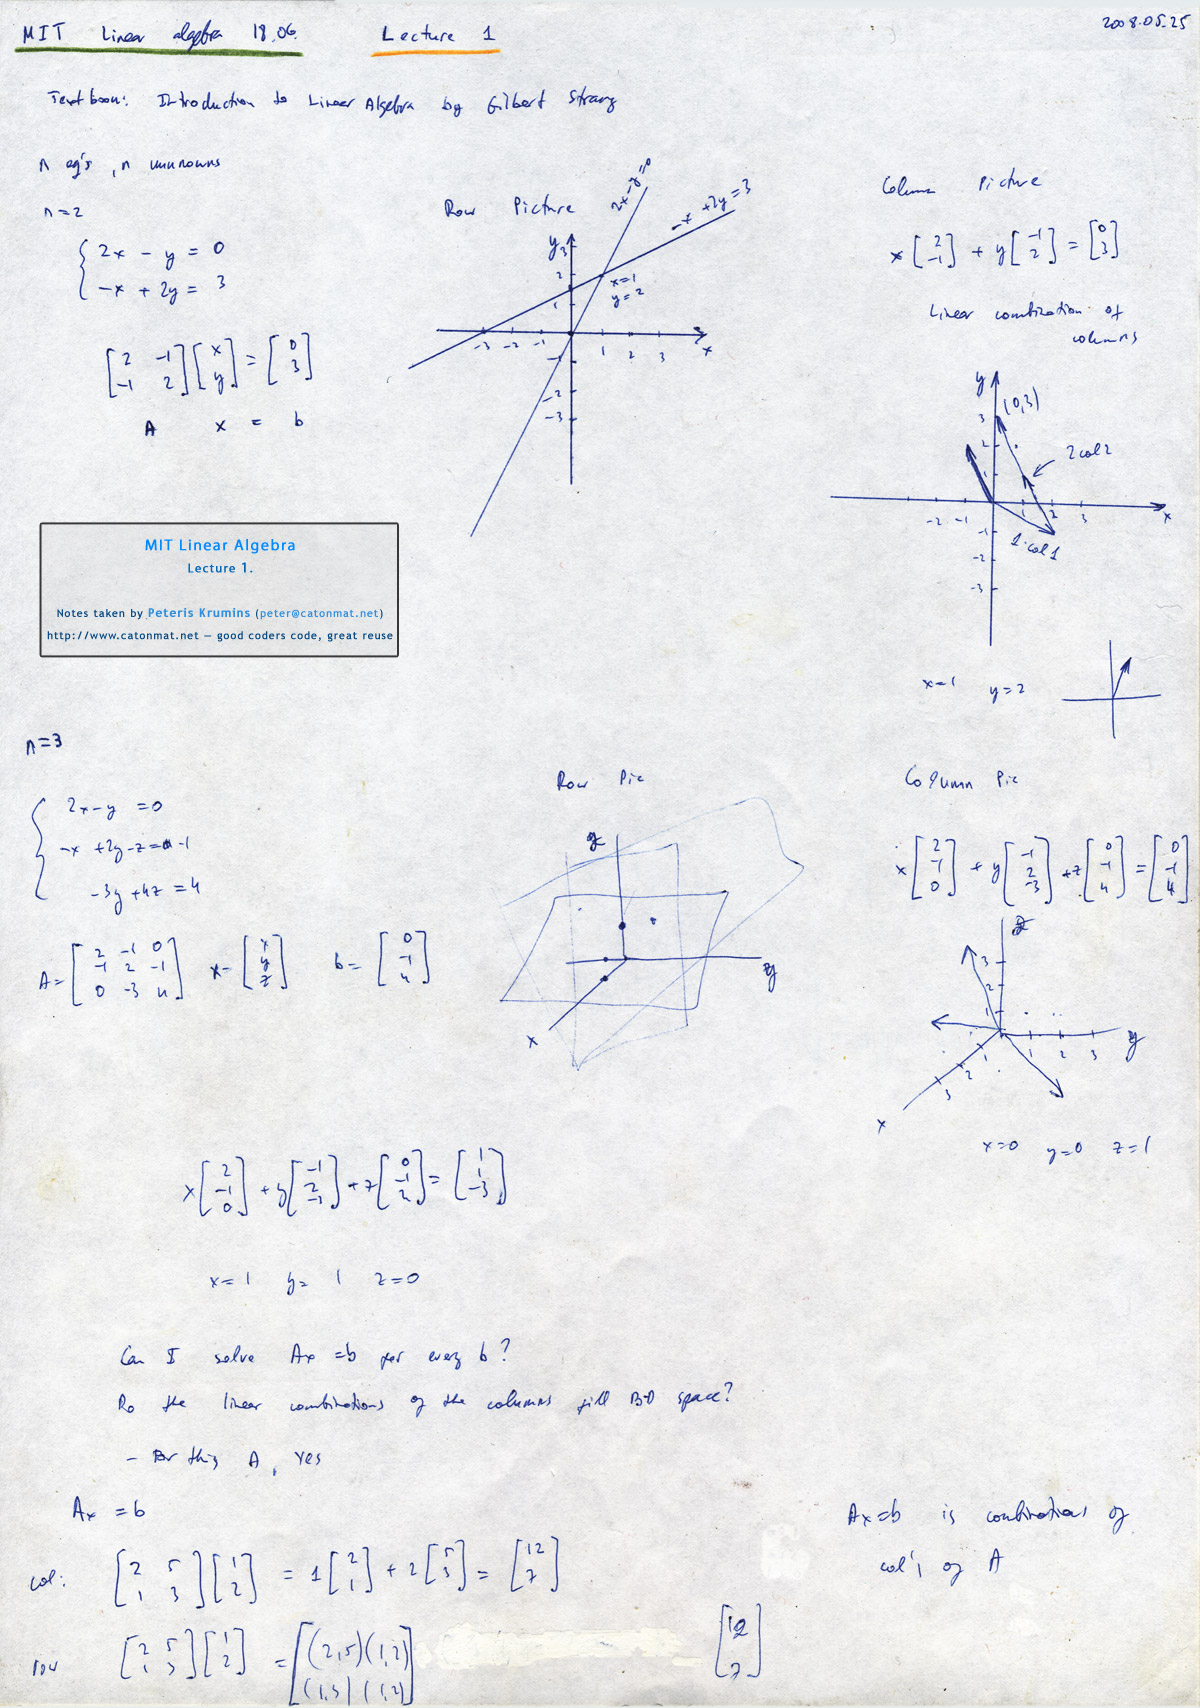 MIT Linear Algebra, Lecture 1: The Geometry of Linear Equations